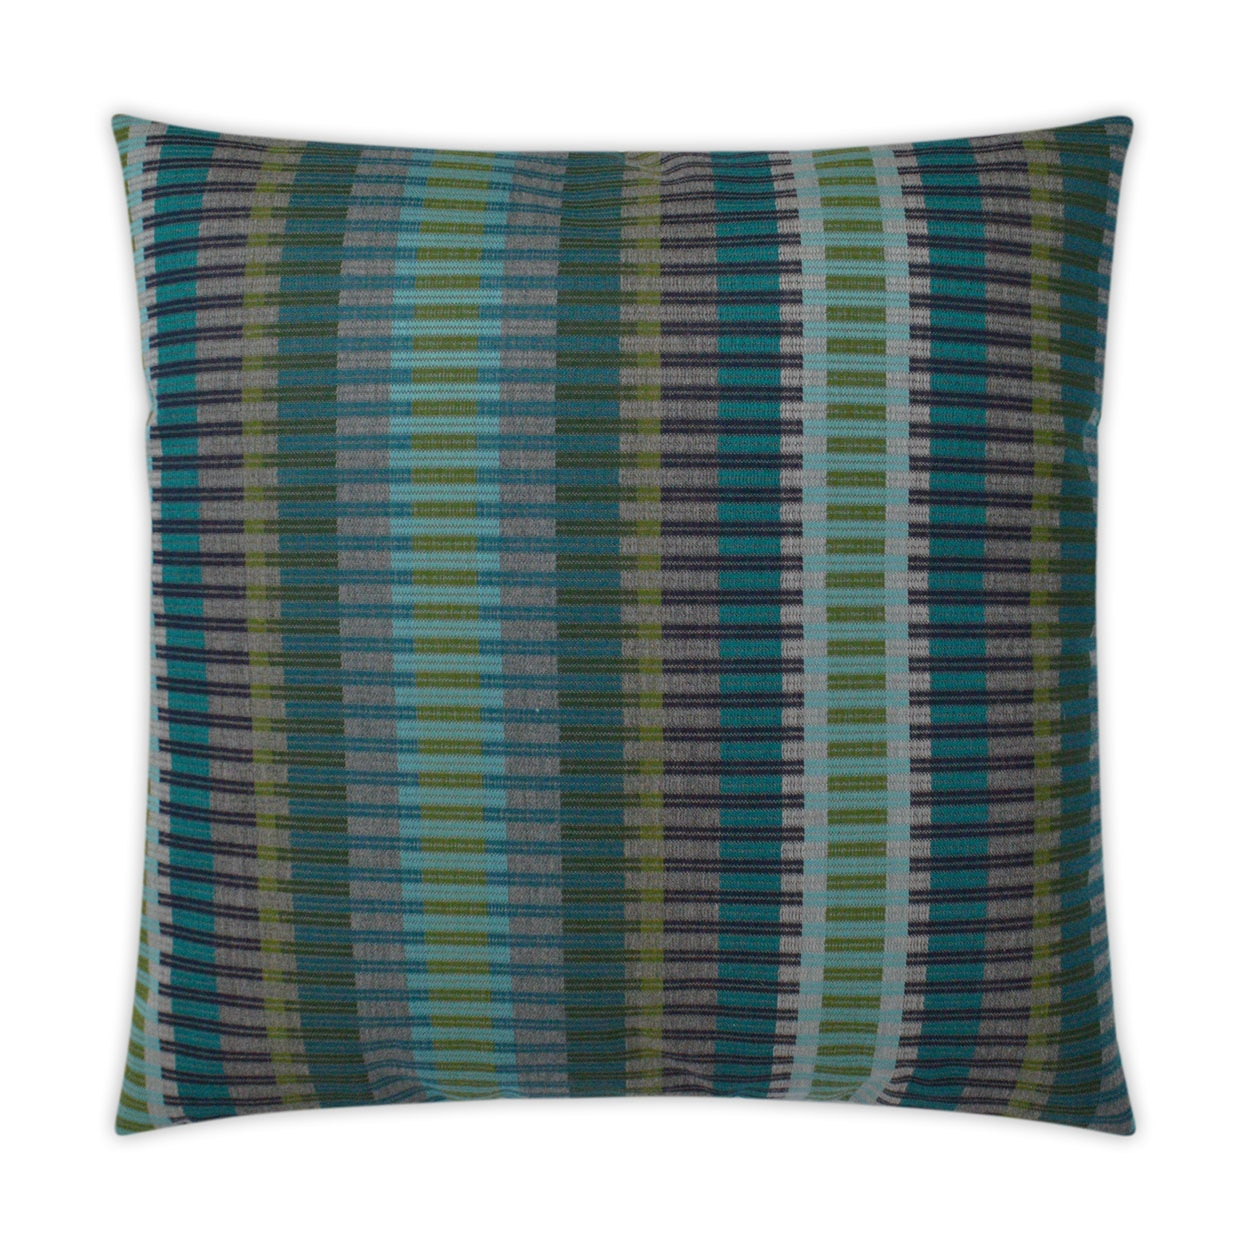 Luxury Beach Home Pillows